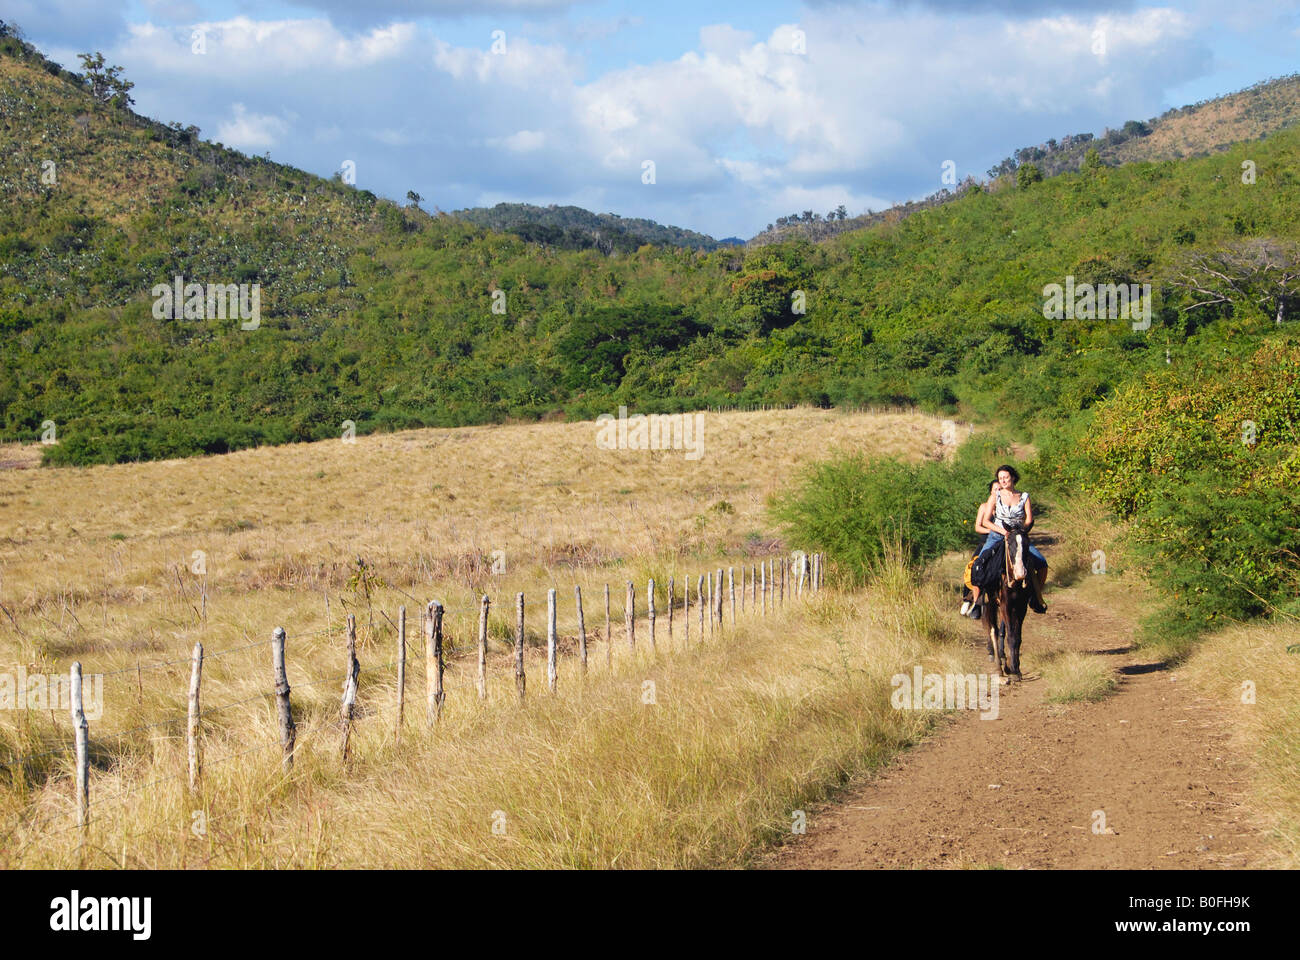 Female tourists on horseback Trinidad Cuba - Stock Image